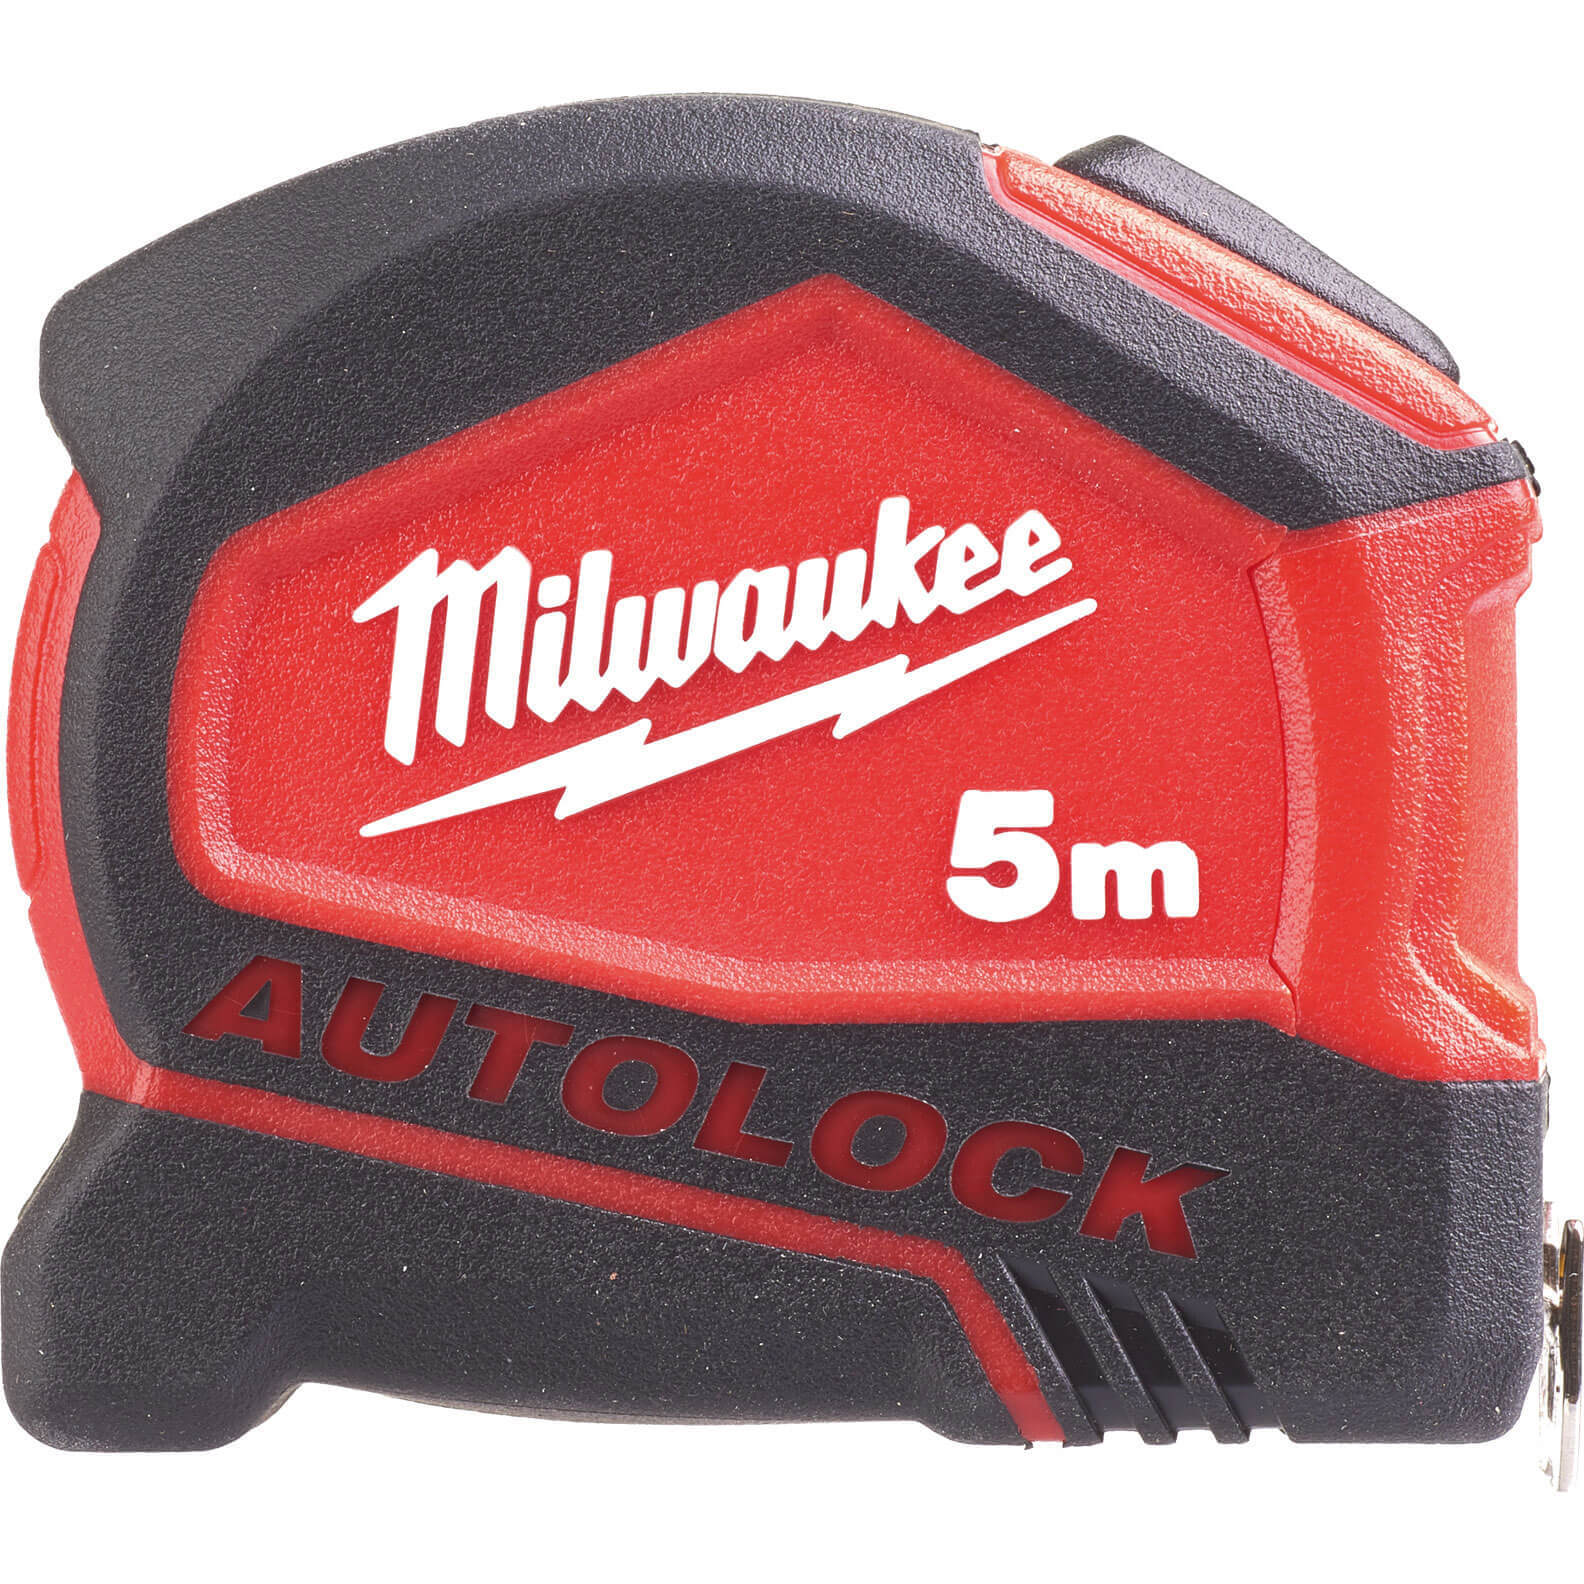 Image of Milwaukee Autolock Tape Measure Metric Metric 5m 25mm